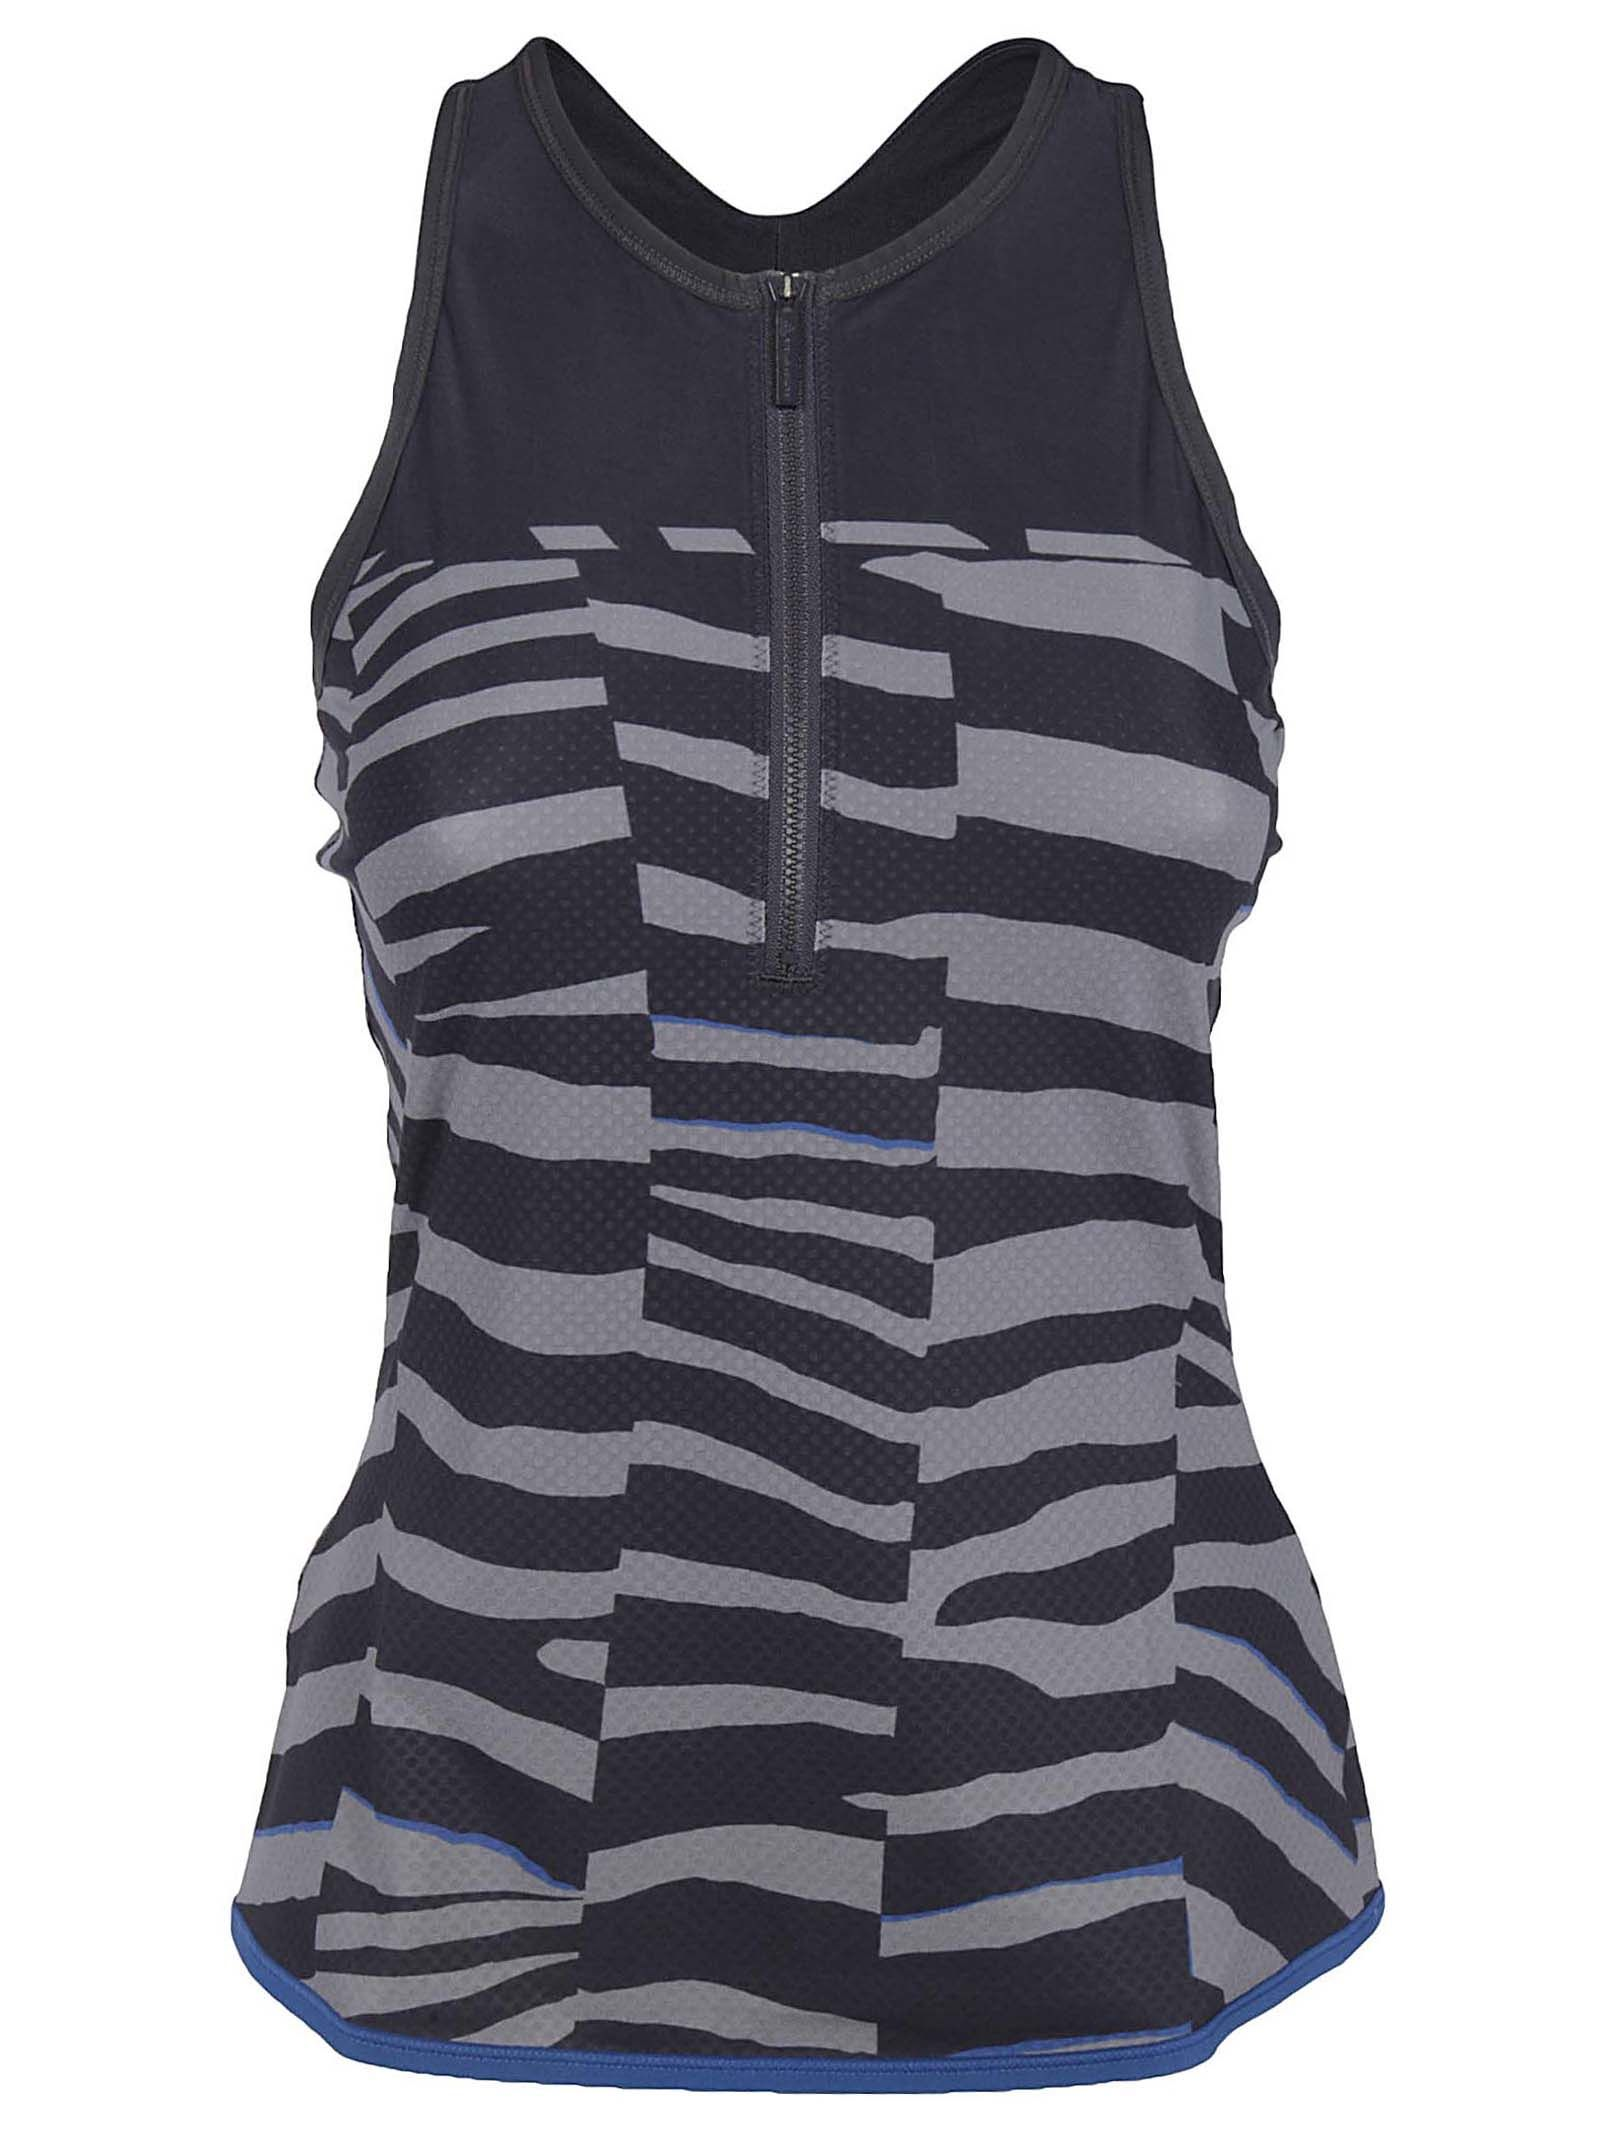 ADIDAS BY STELLA MCCARTNEY MIRACLE TRAINING TANK TOP from Italist.com